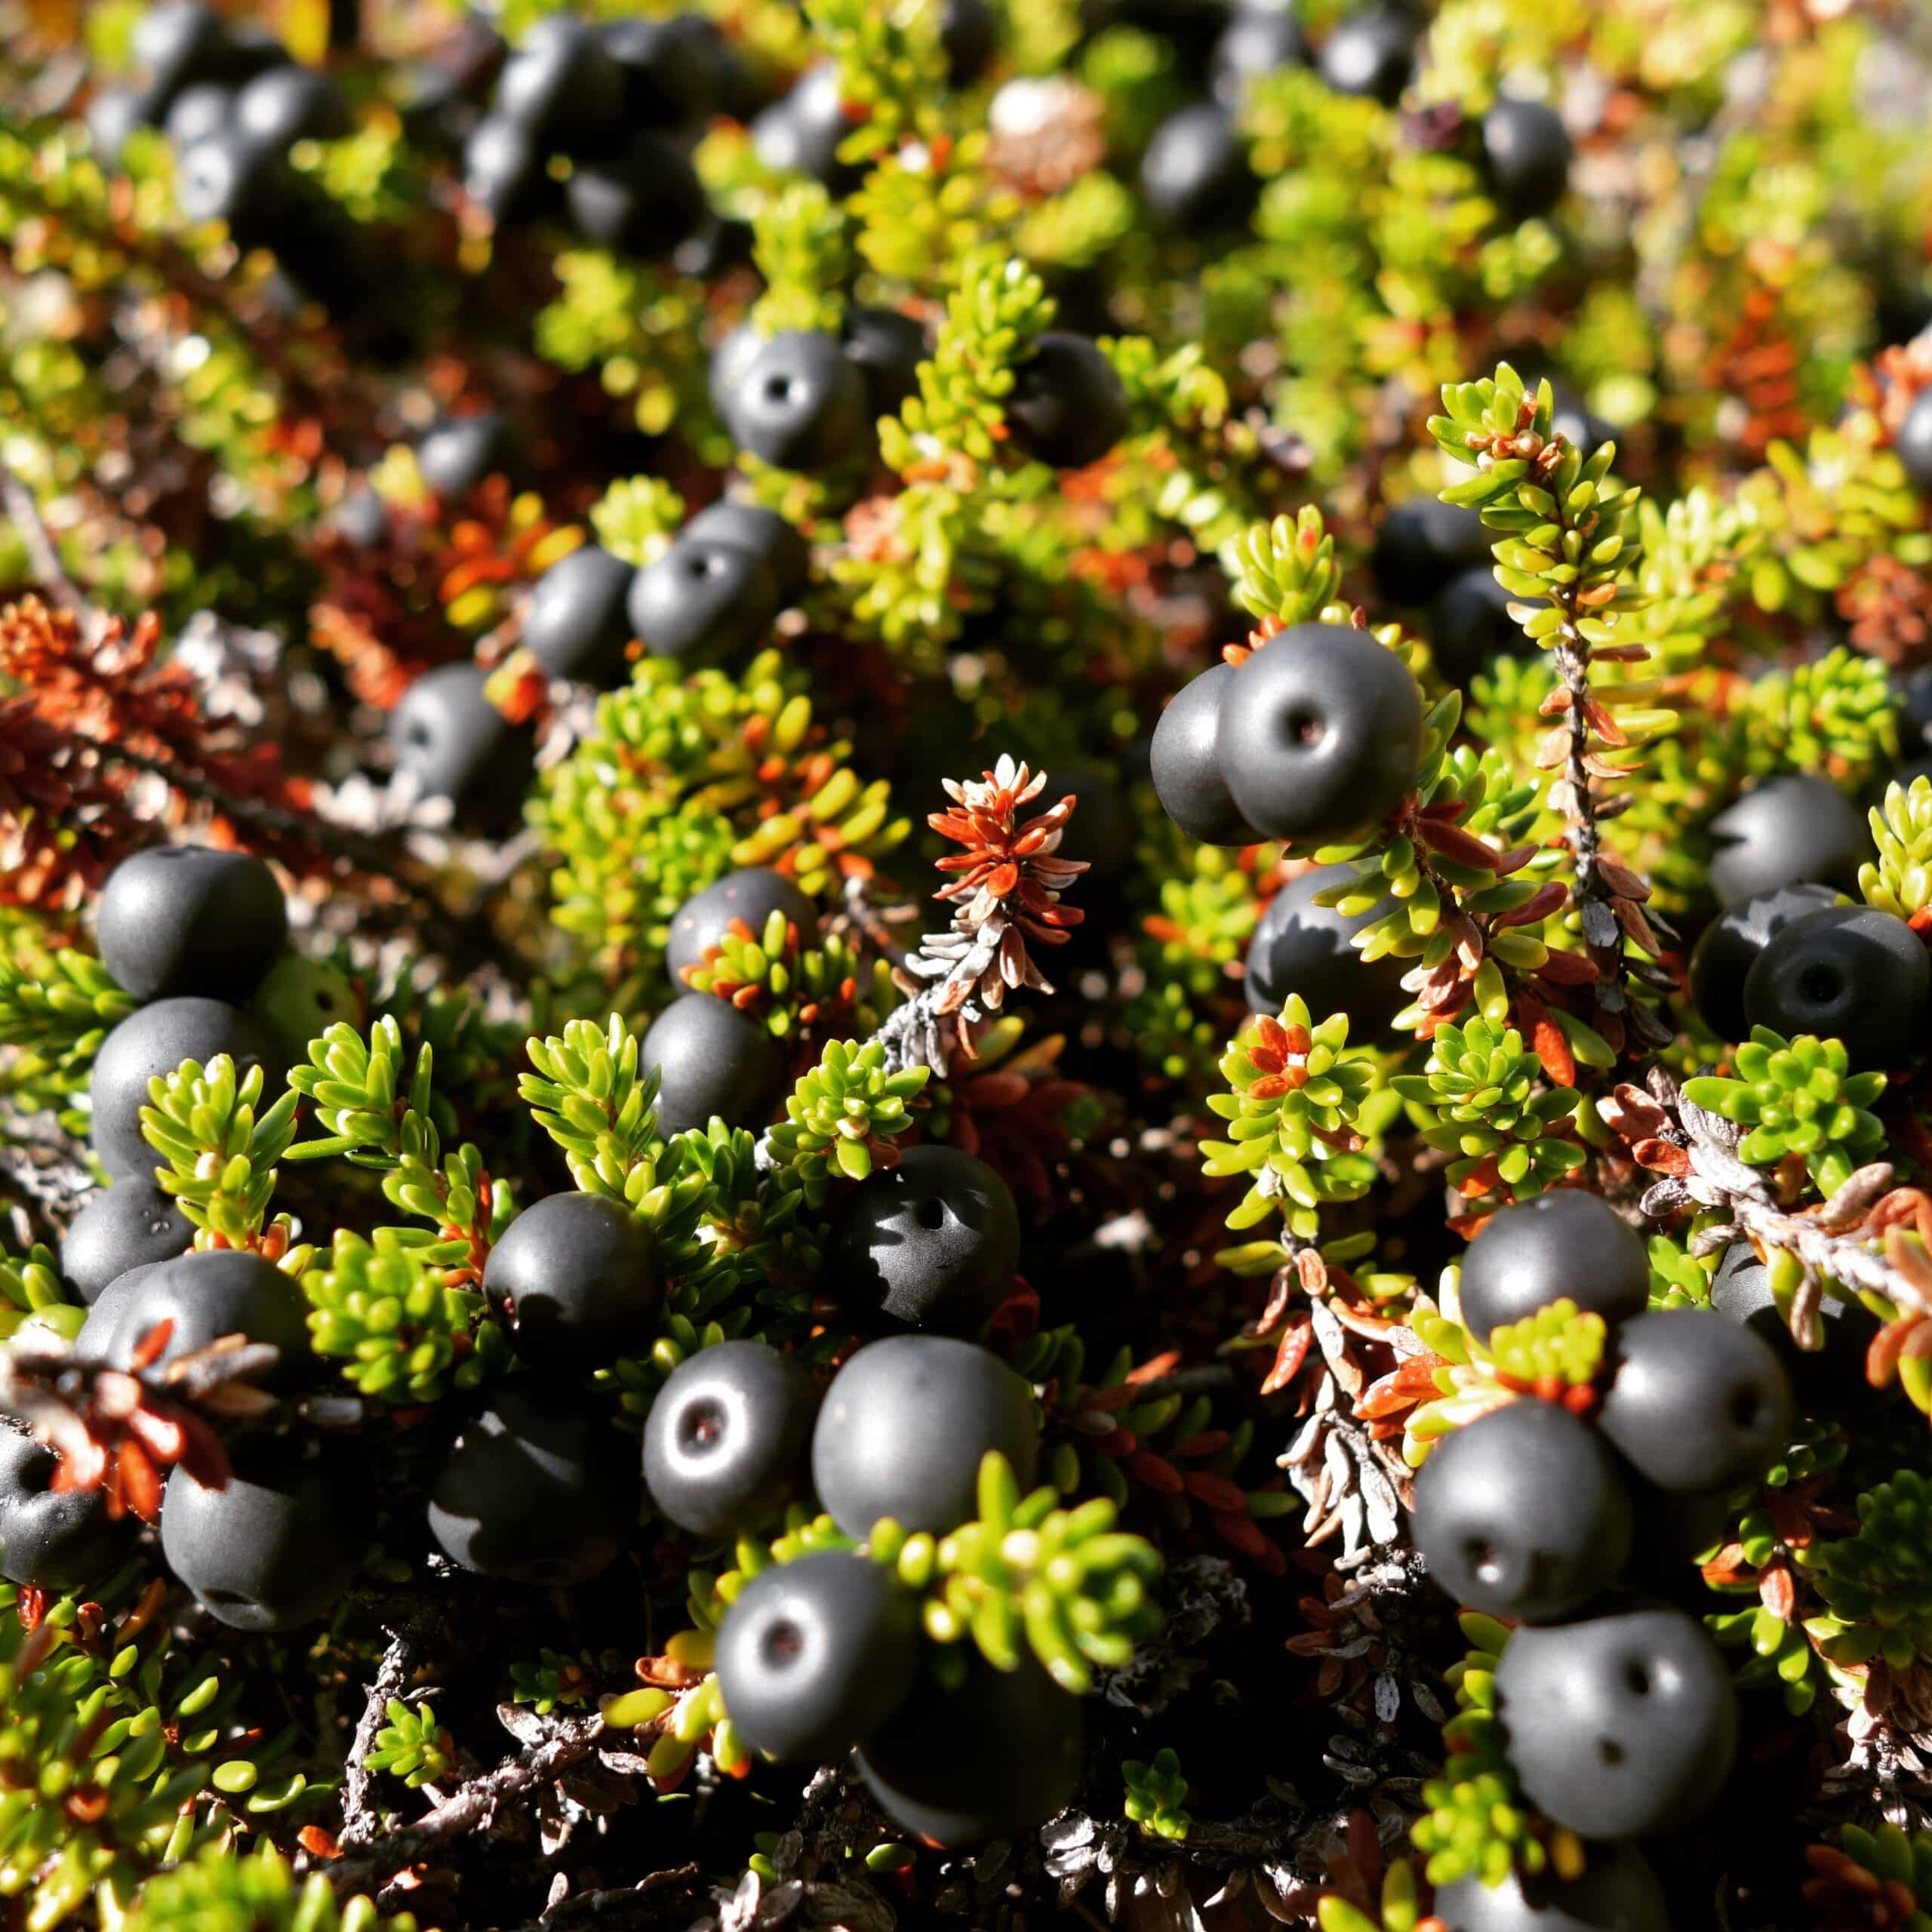 Berry picking in Nuuk, Greenland